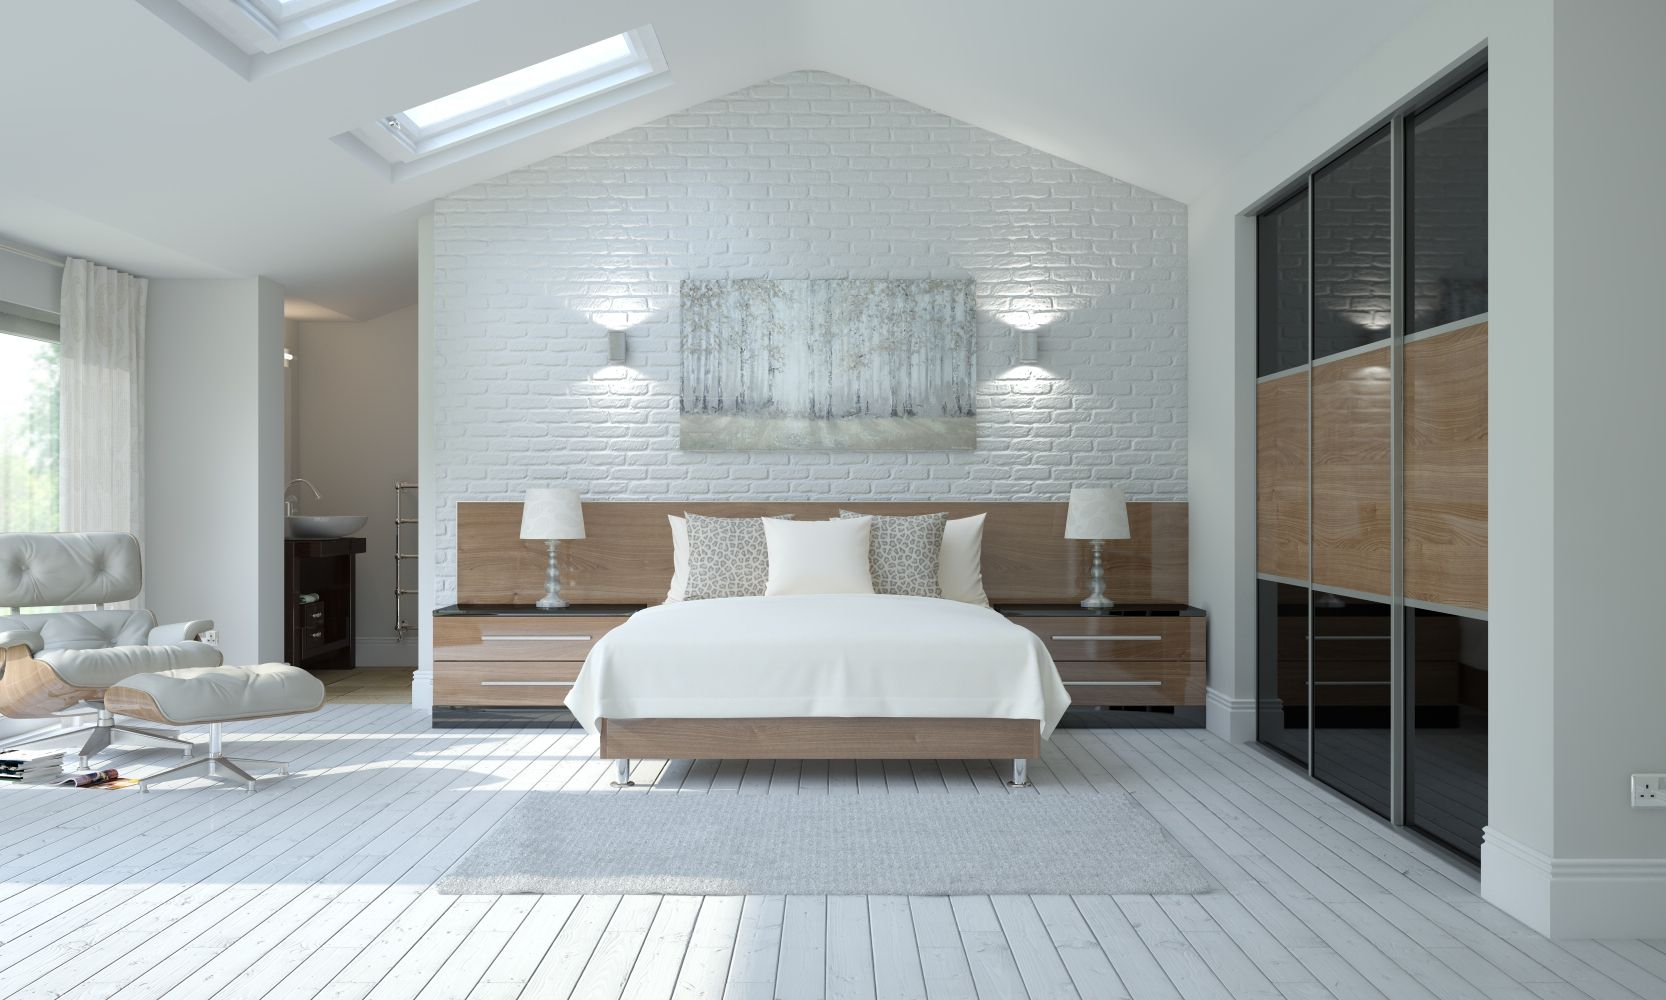 Built in wardrobe and back wall Interior design, New